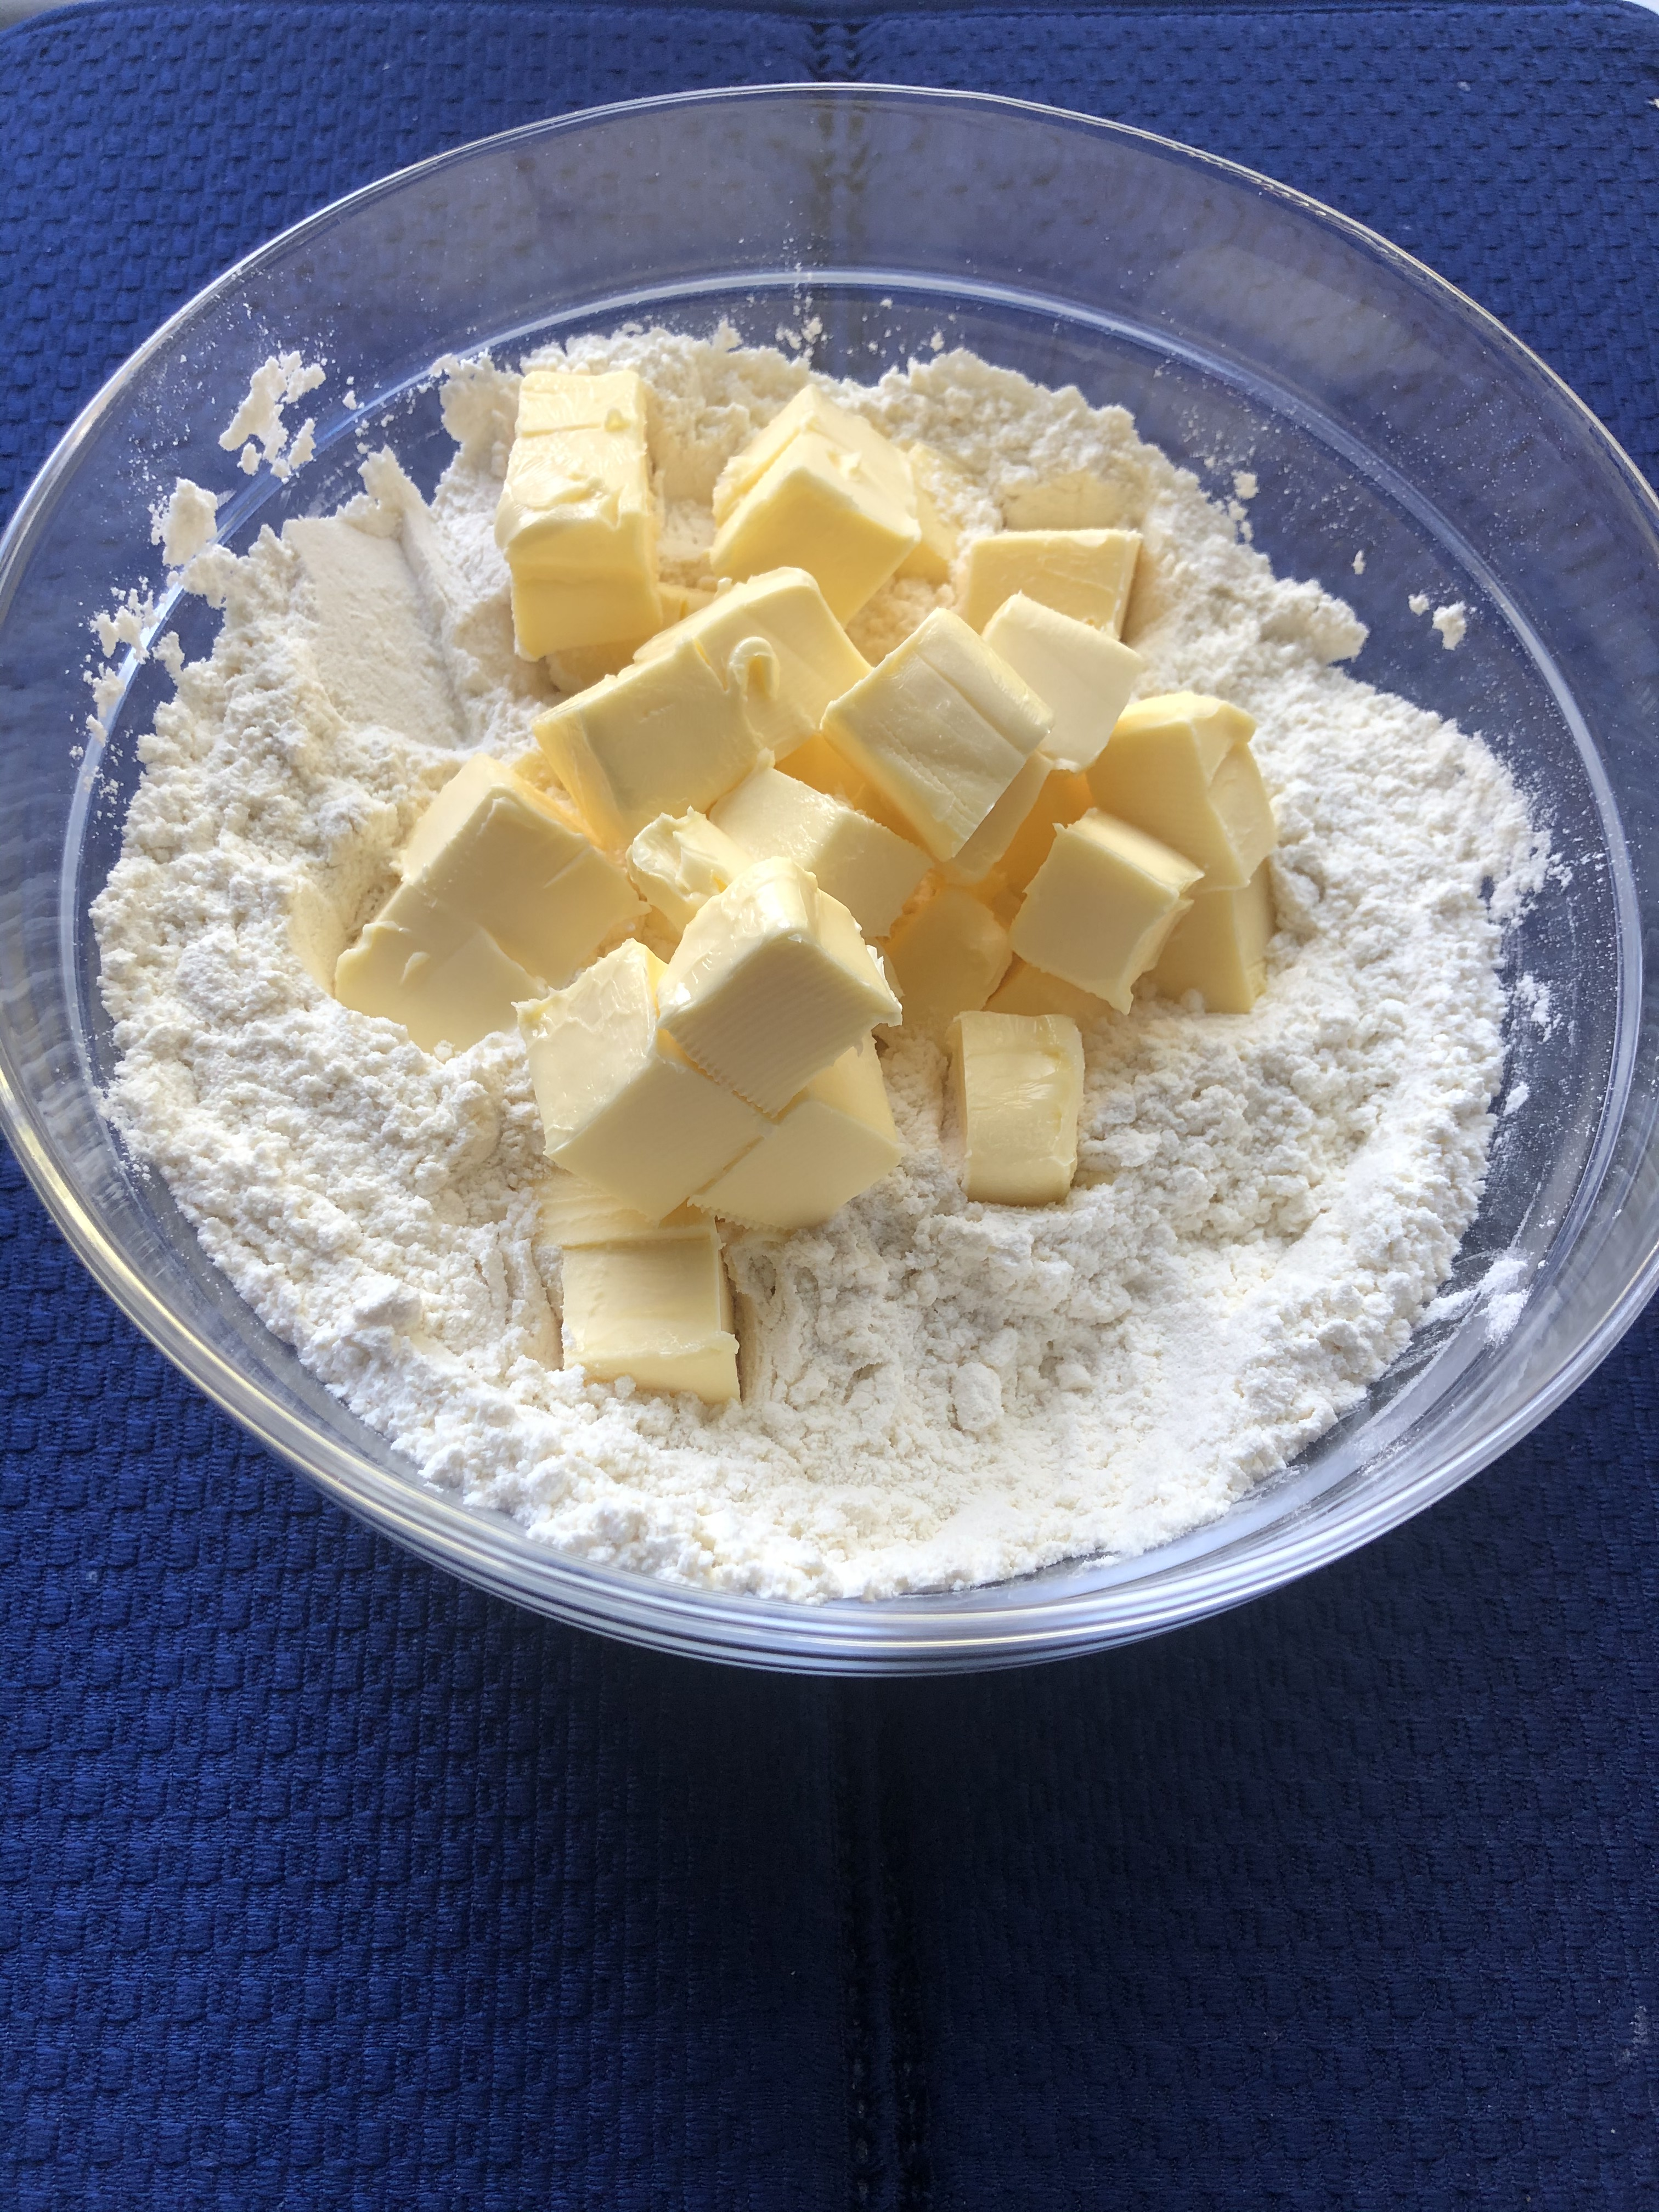 Butter or Oil – What Should I Use While Making a Cake